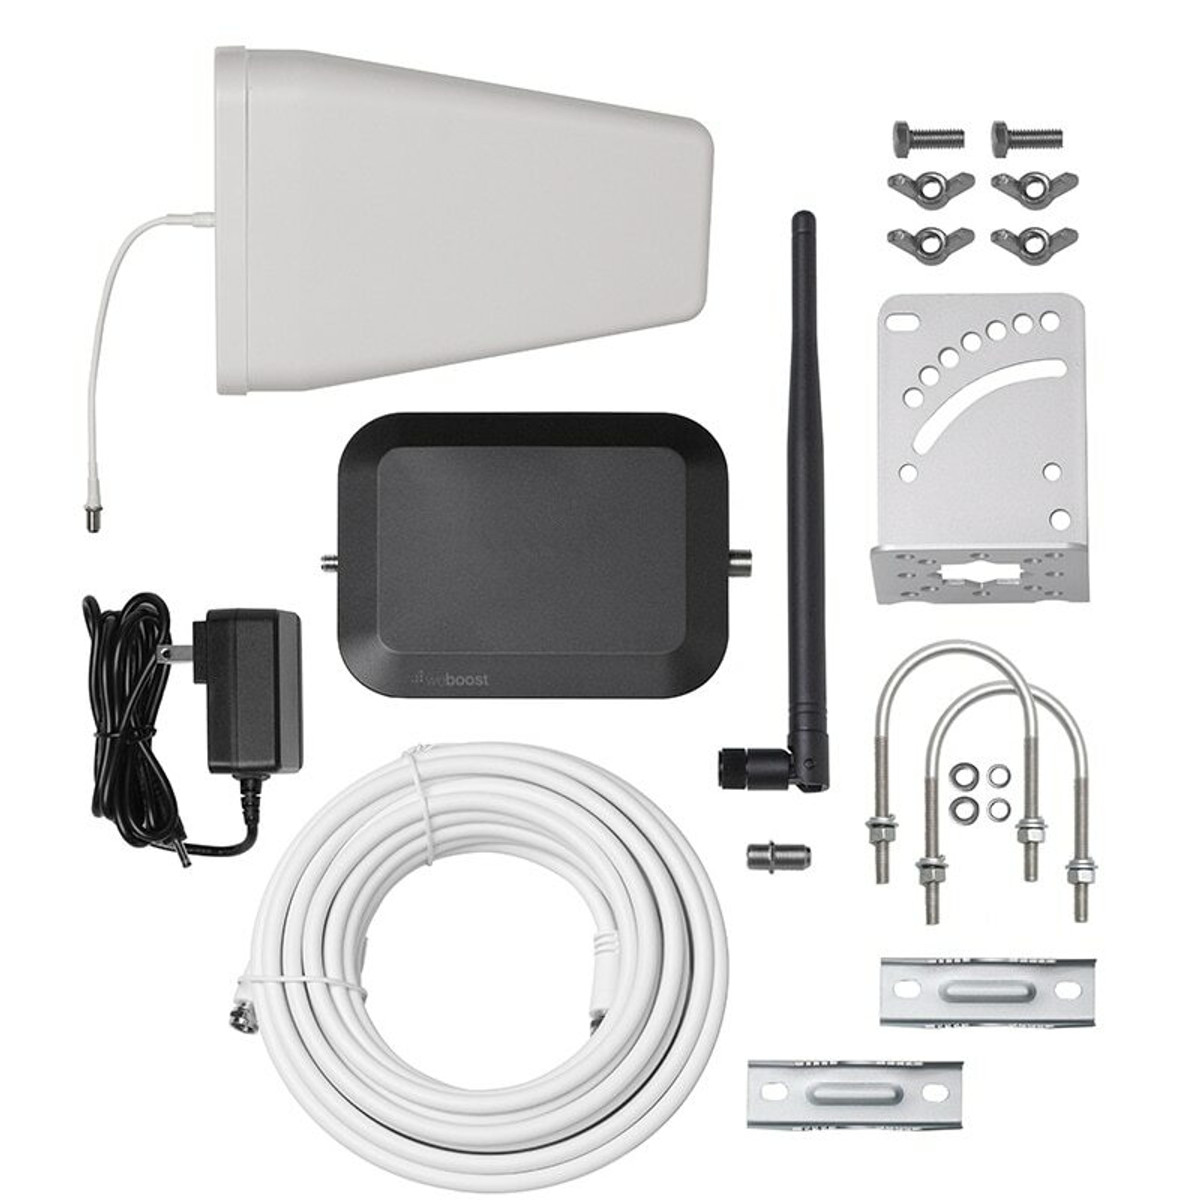 weBoost Home Studio Signal Booster Kit - 650166